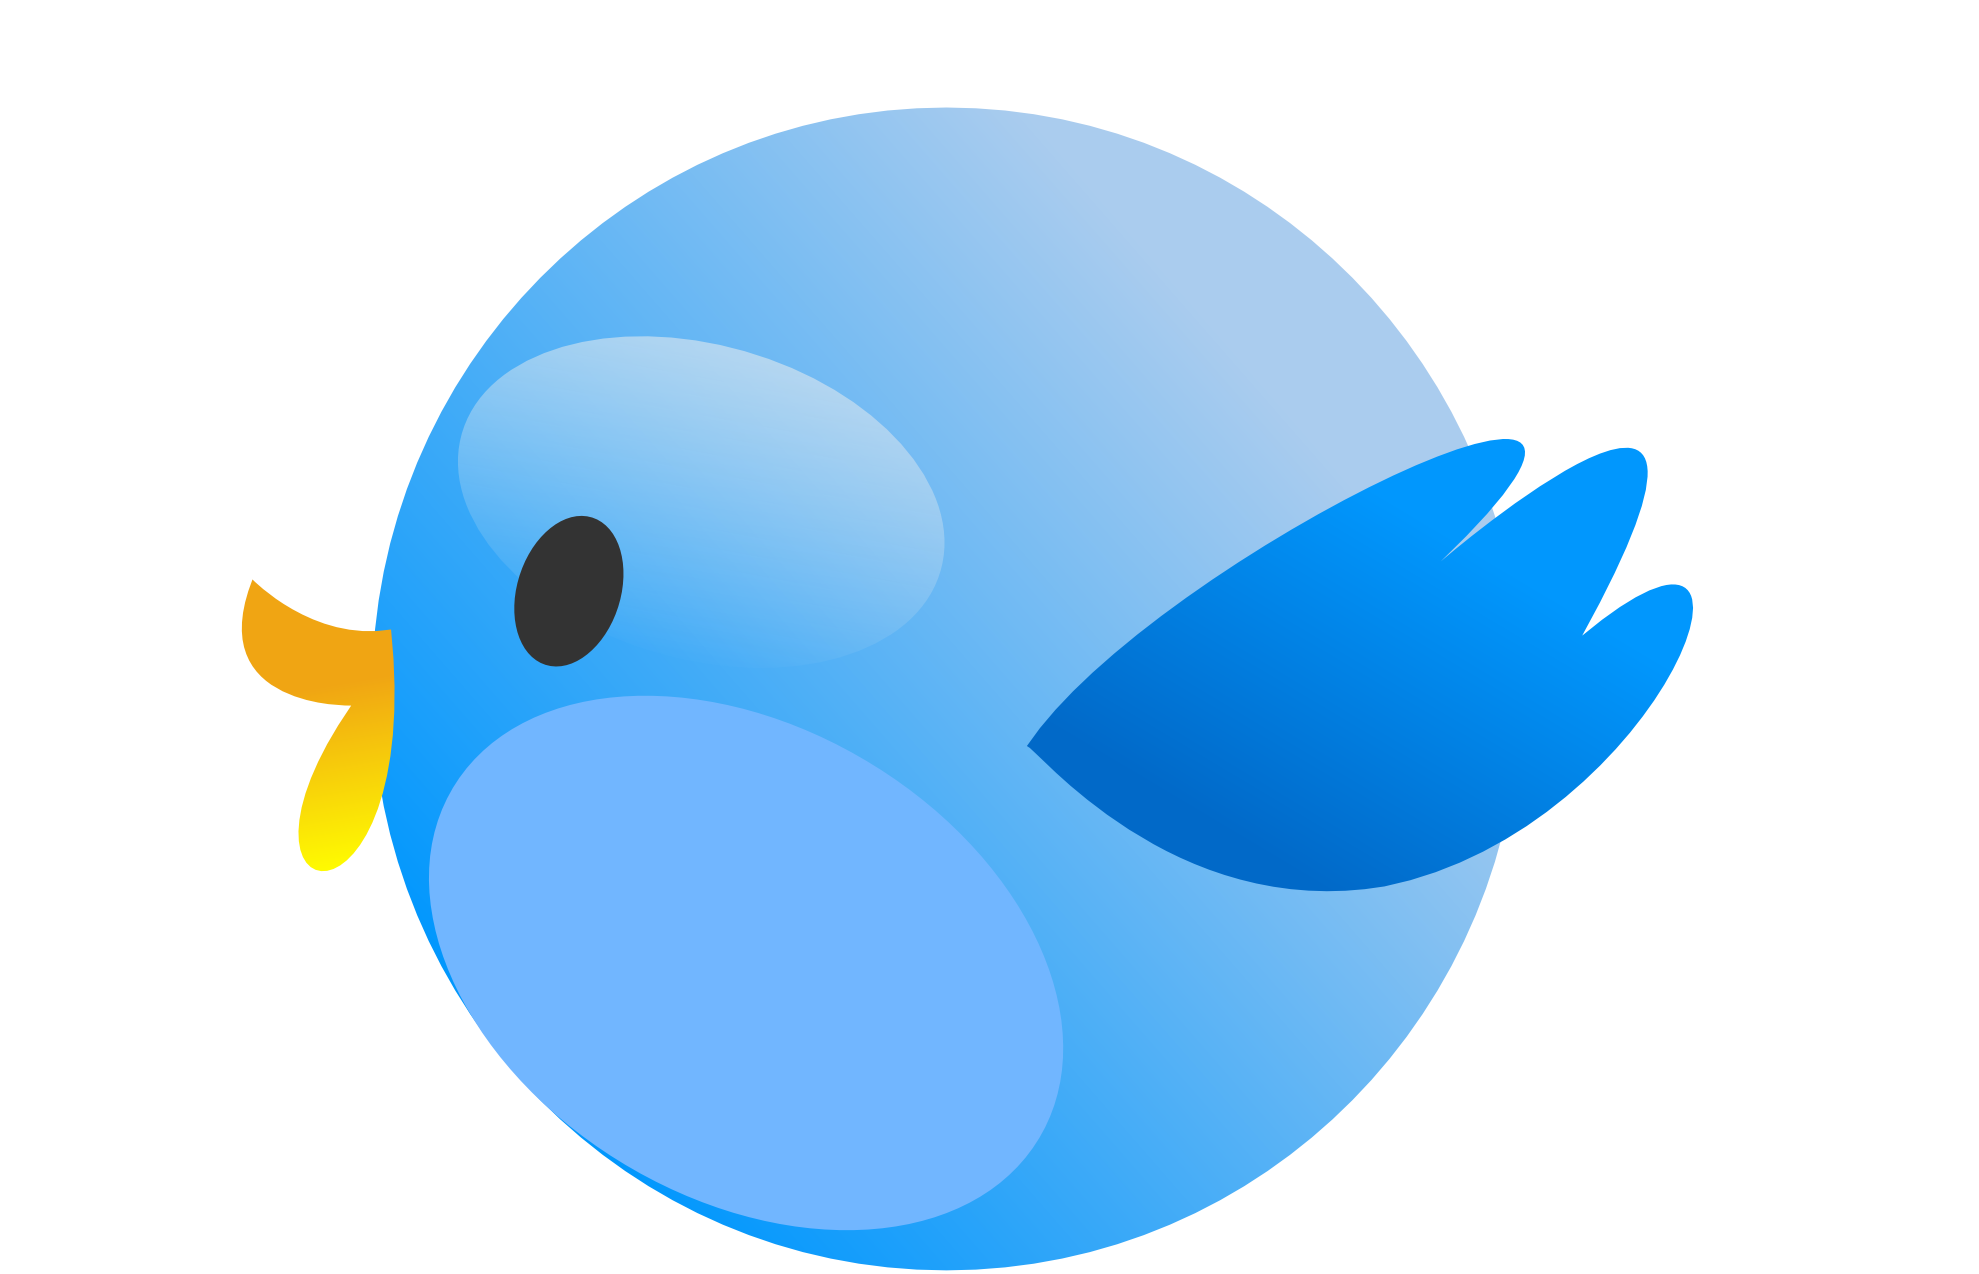 Twitter clipart png graphic transparent clipartist.net » Clip Art » tweet twitter bird 2 clipartist.net 2012 ... graphic transparent